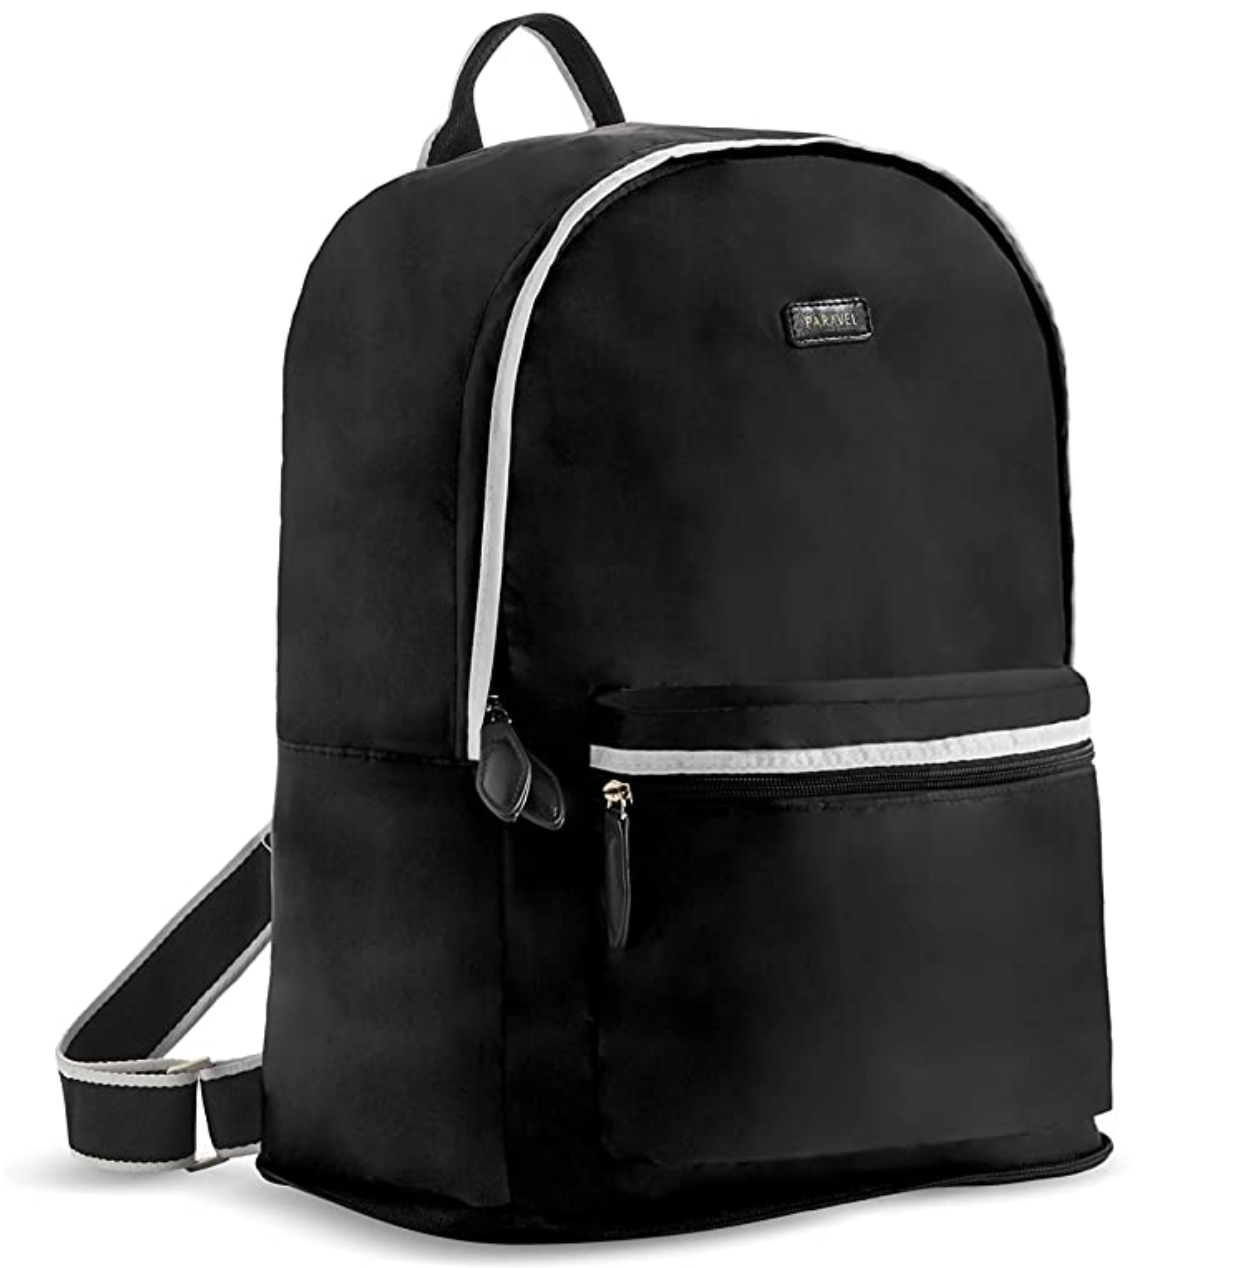 travel-gifts-for-women-fold-up-backpack